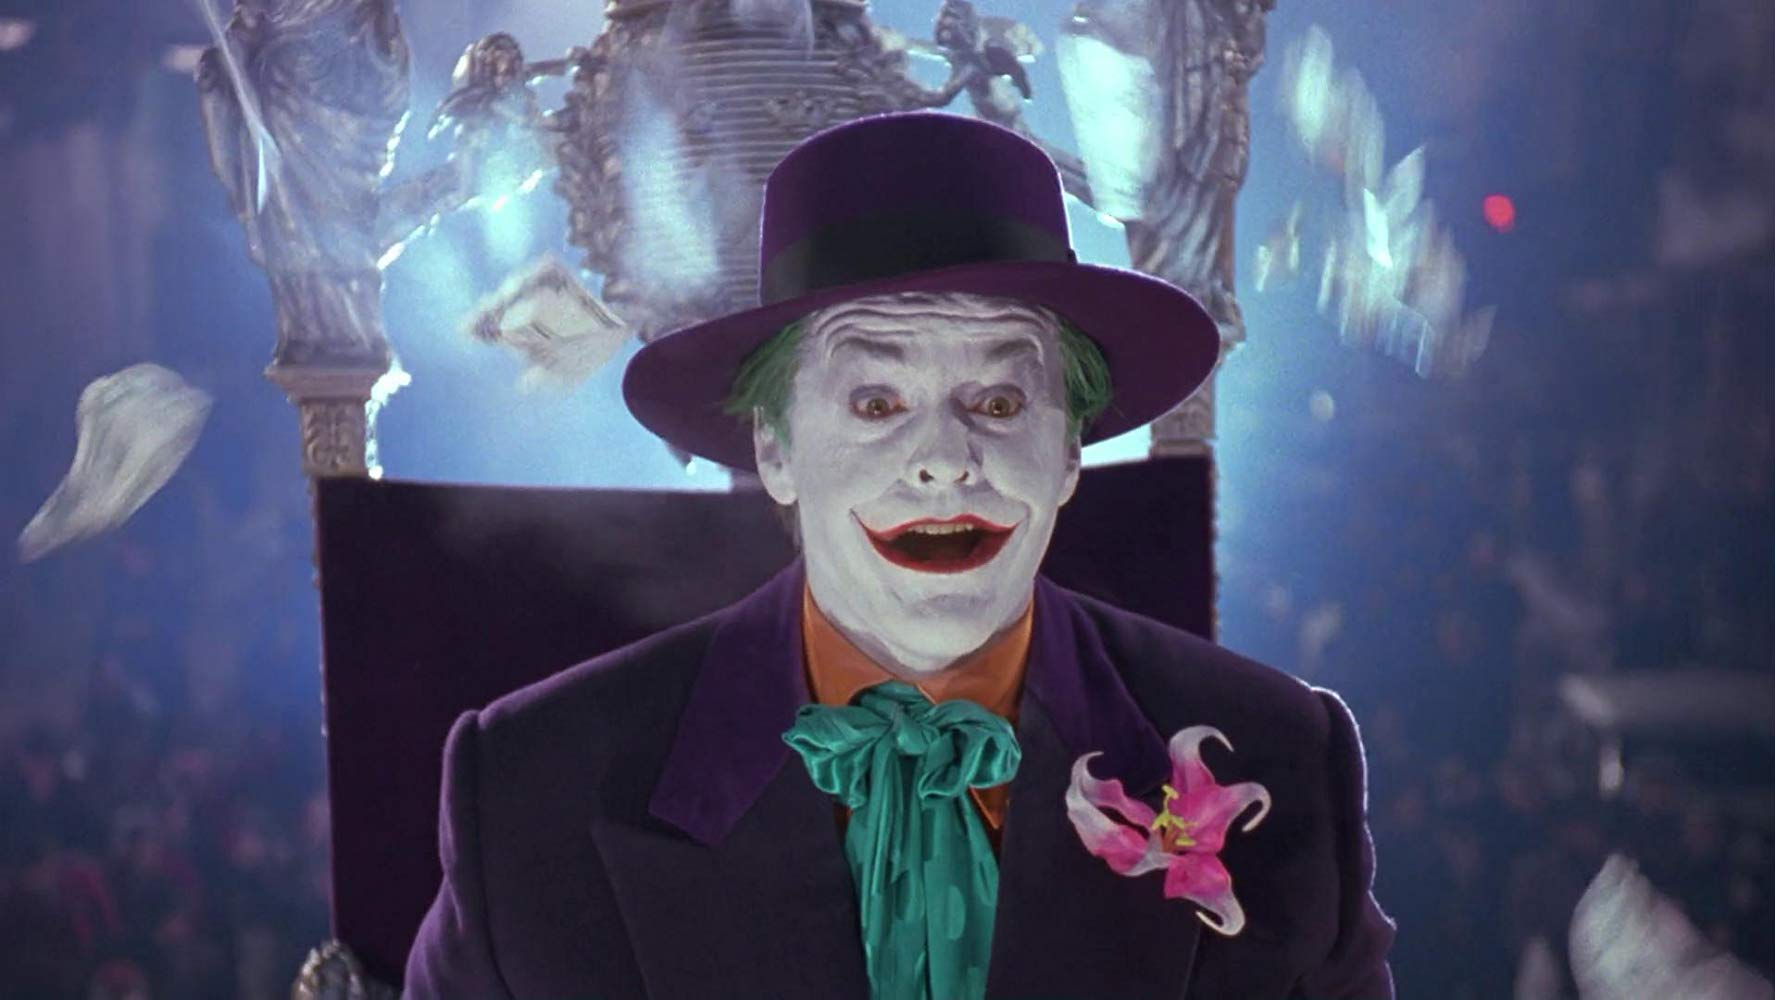 Jack Nicholson's Joker in Batman (1989)